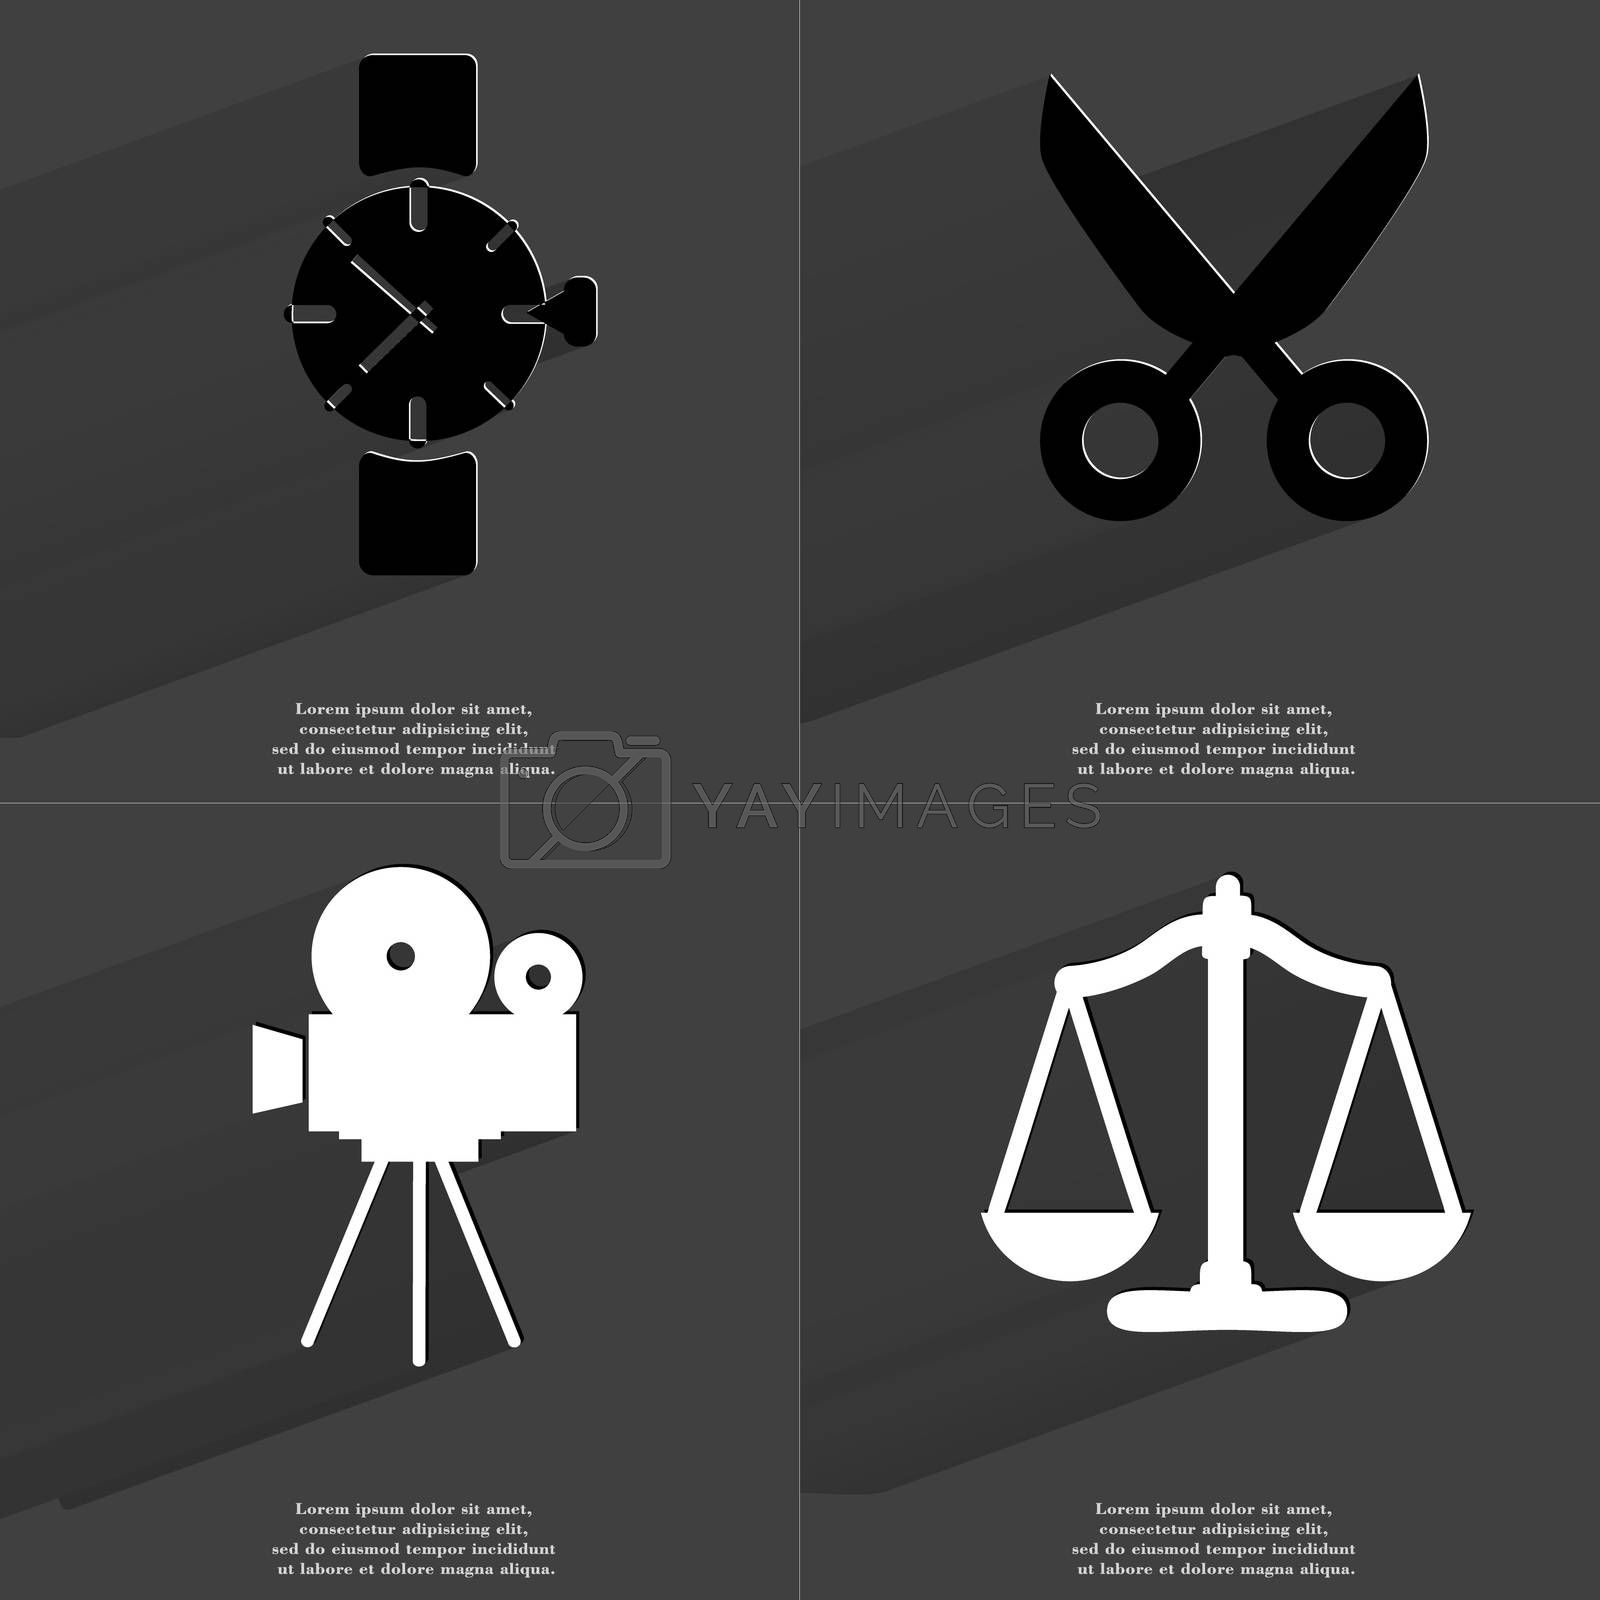 Royalty free image of Wrist watch, Scissors, Film camera, Scales. Symbols with long shadow. Flat design by serhii_lohvyniuk